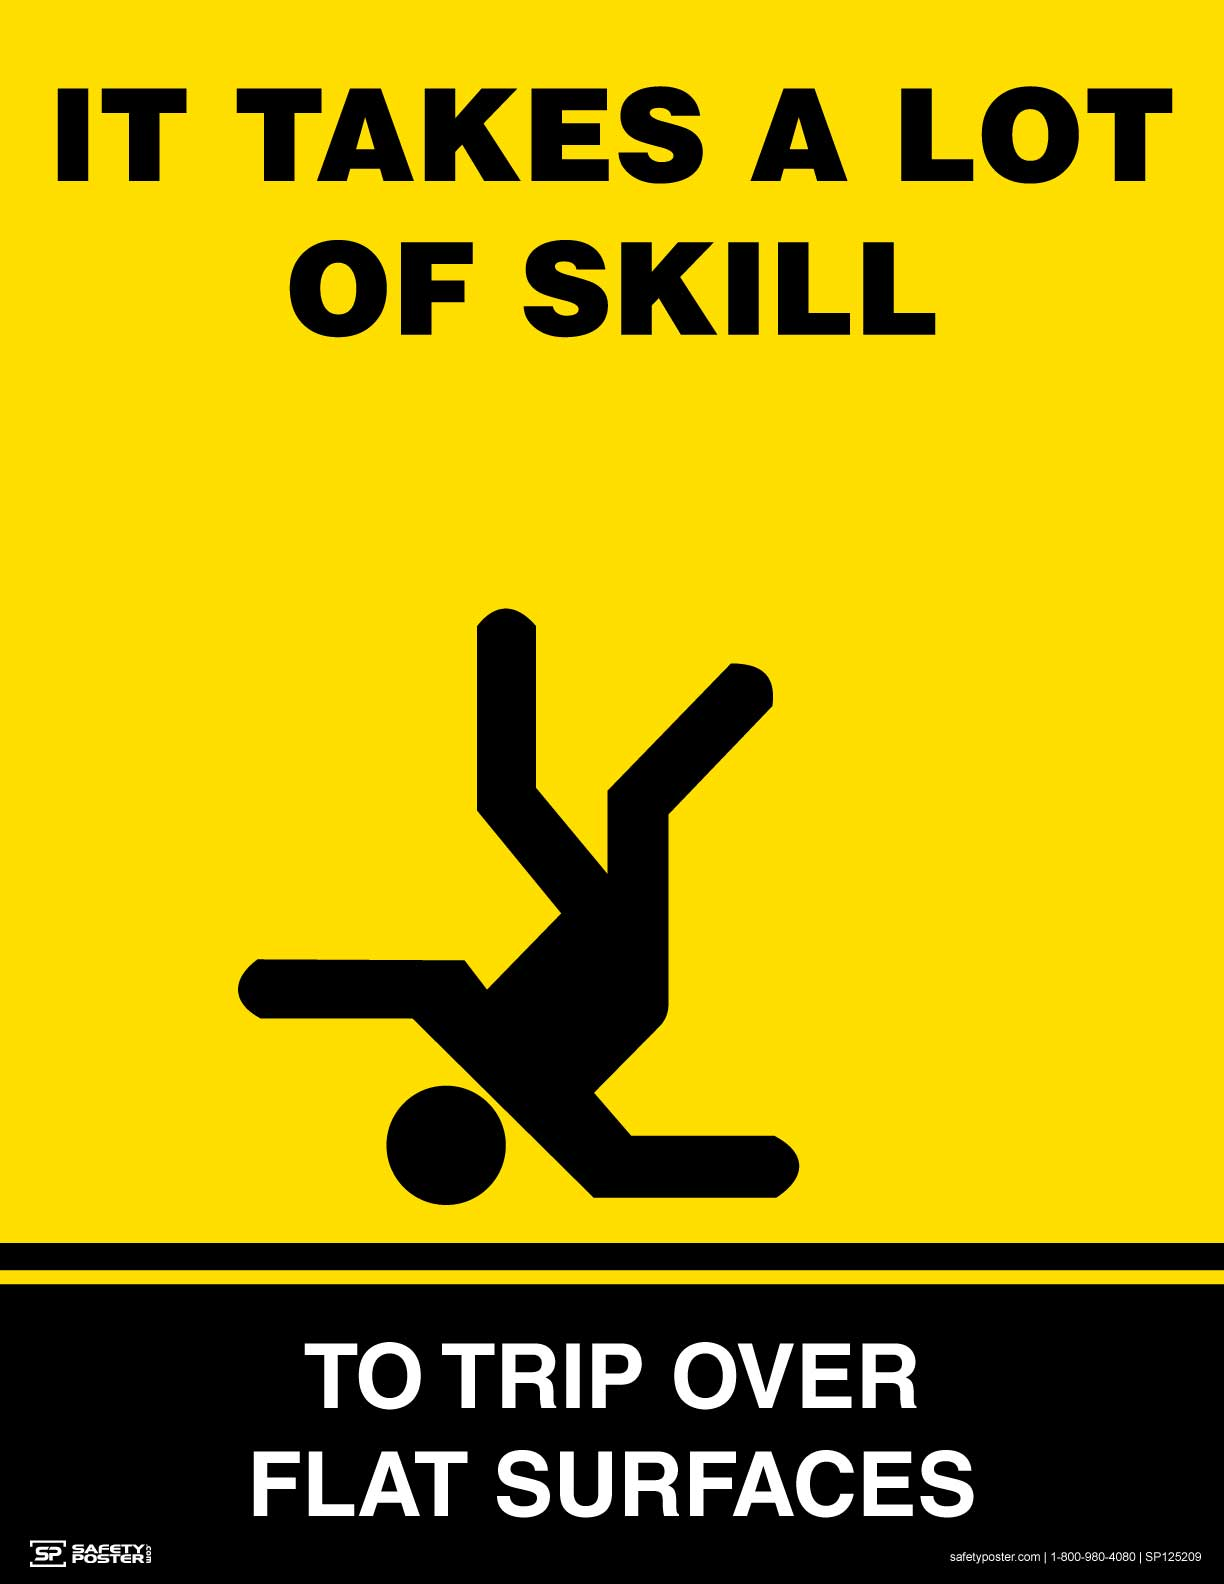 It Takes A Lot Of Skill - Safety Poster